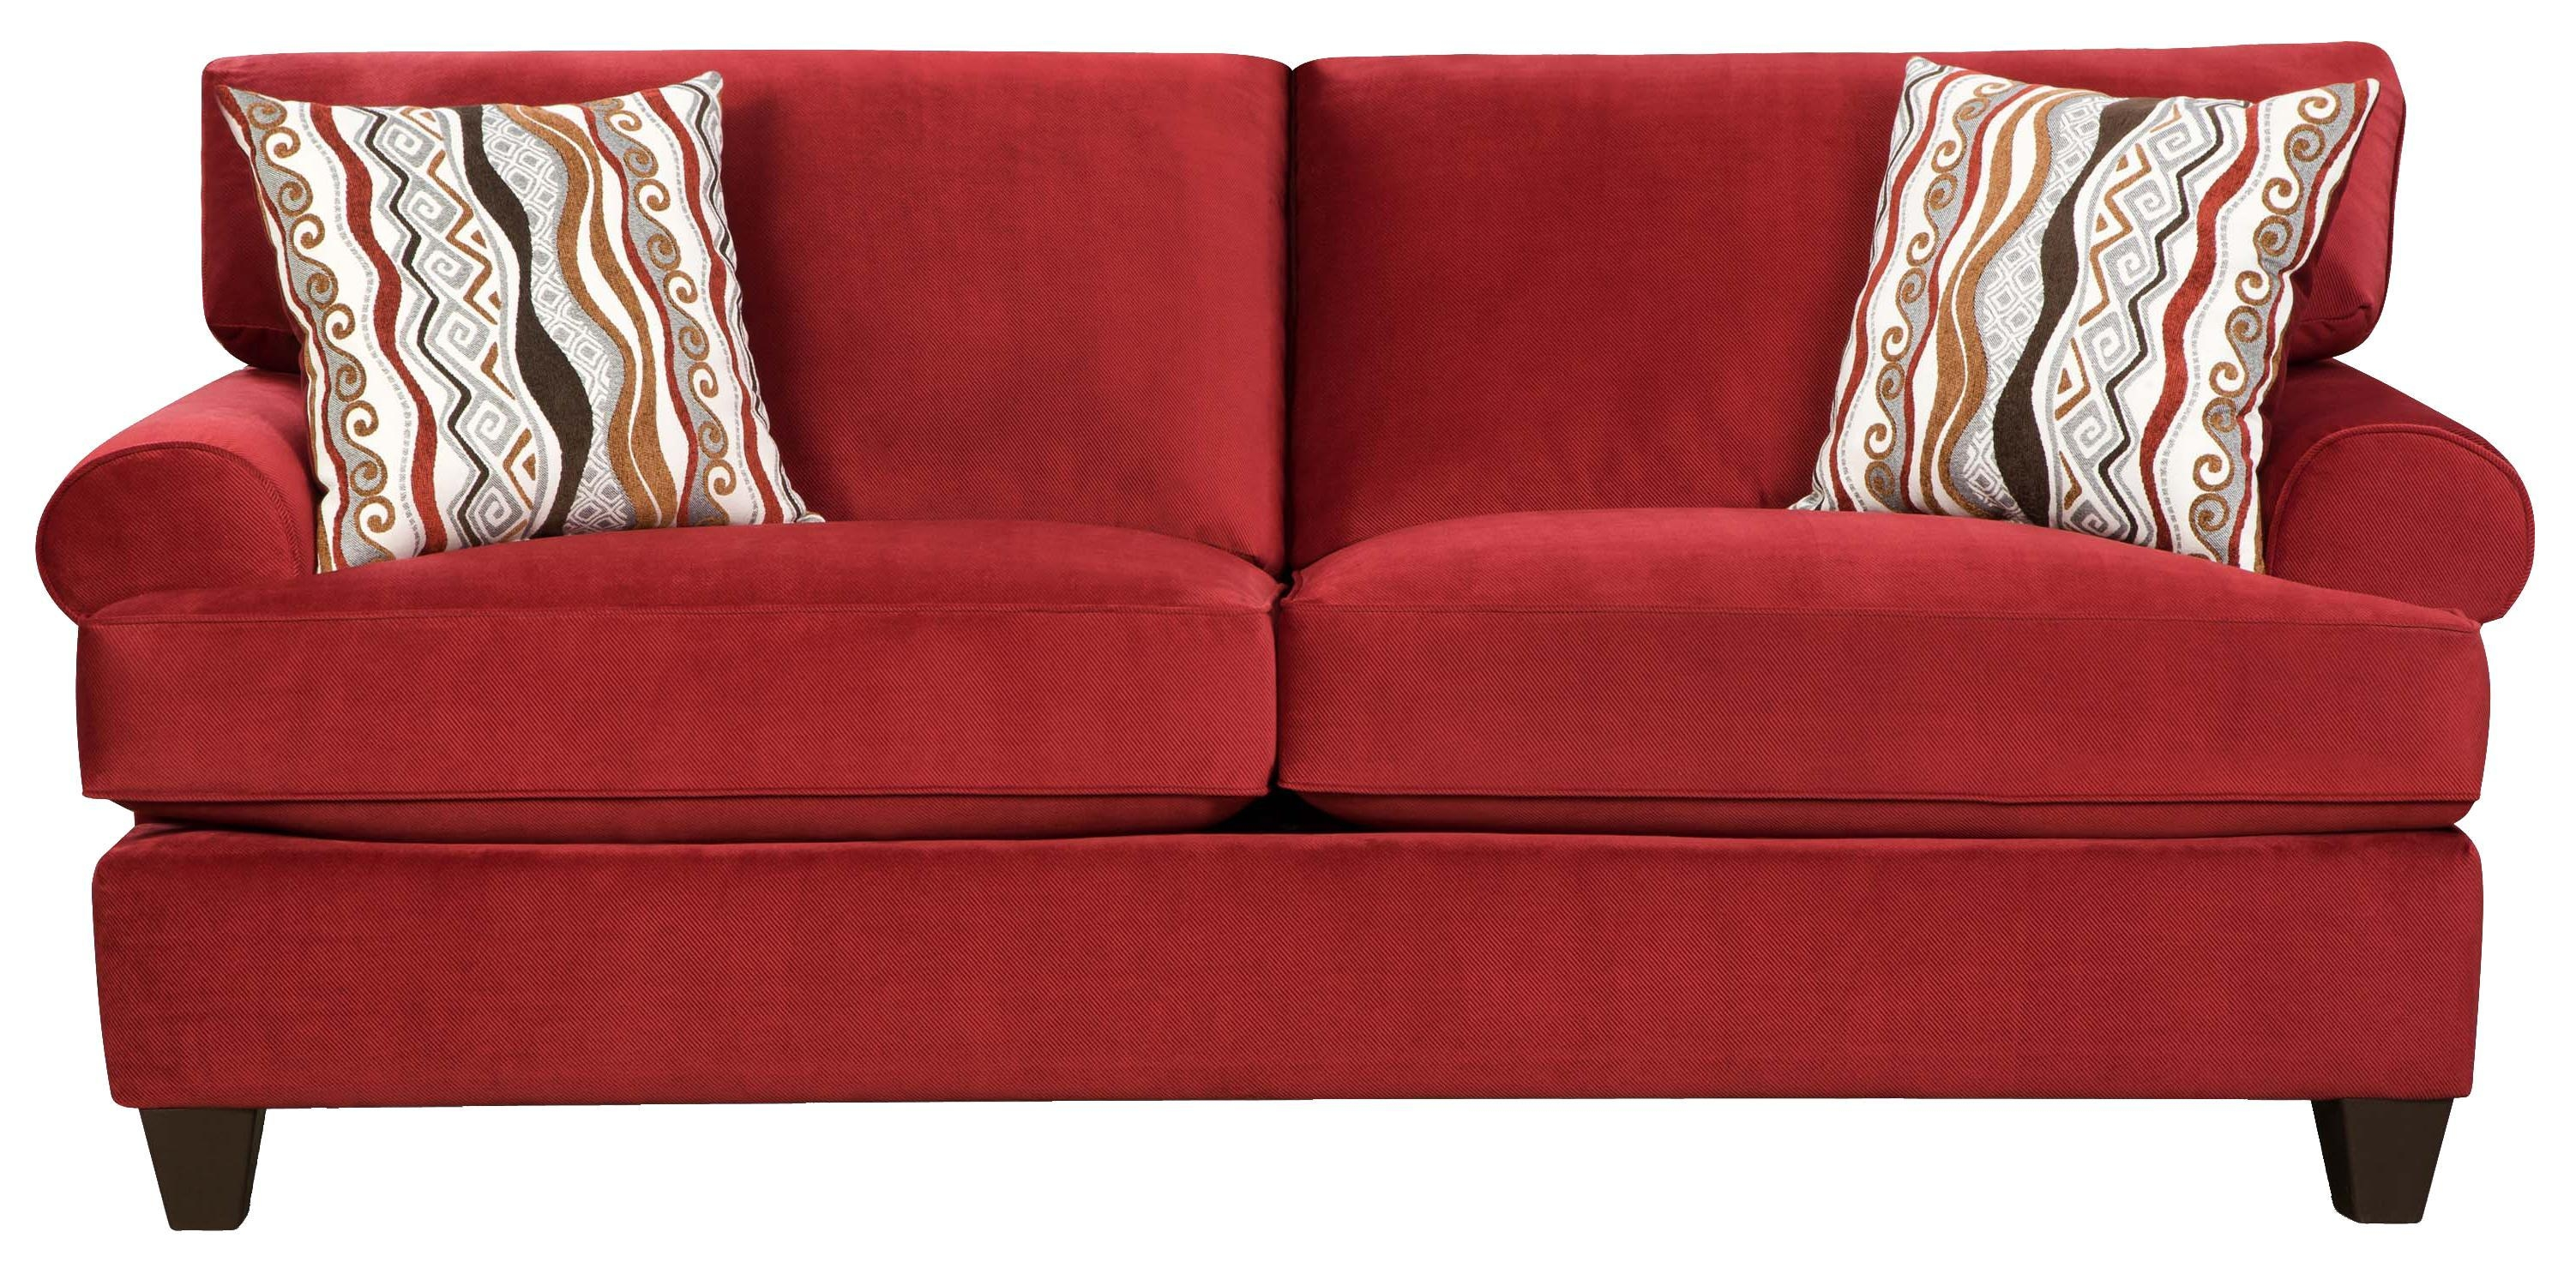 Corinthian 47B0 Casual And Contemporary Living Room Sofa – Vandrie Throughout Corinthian Sofas (Image 5 of 20)